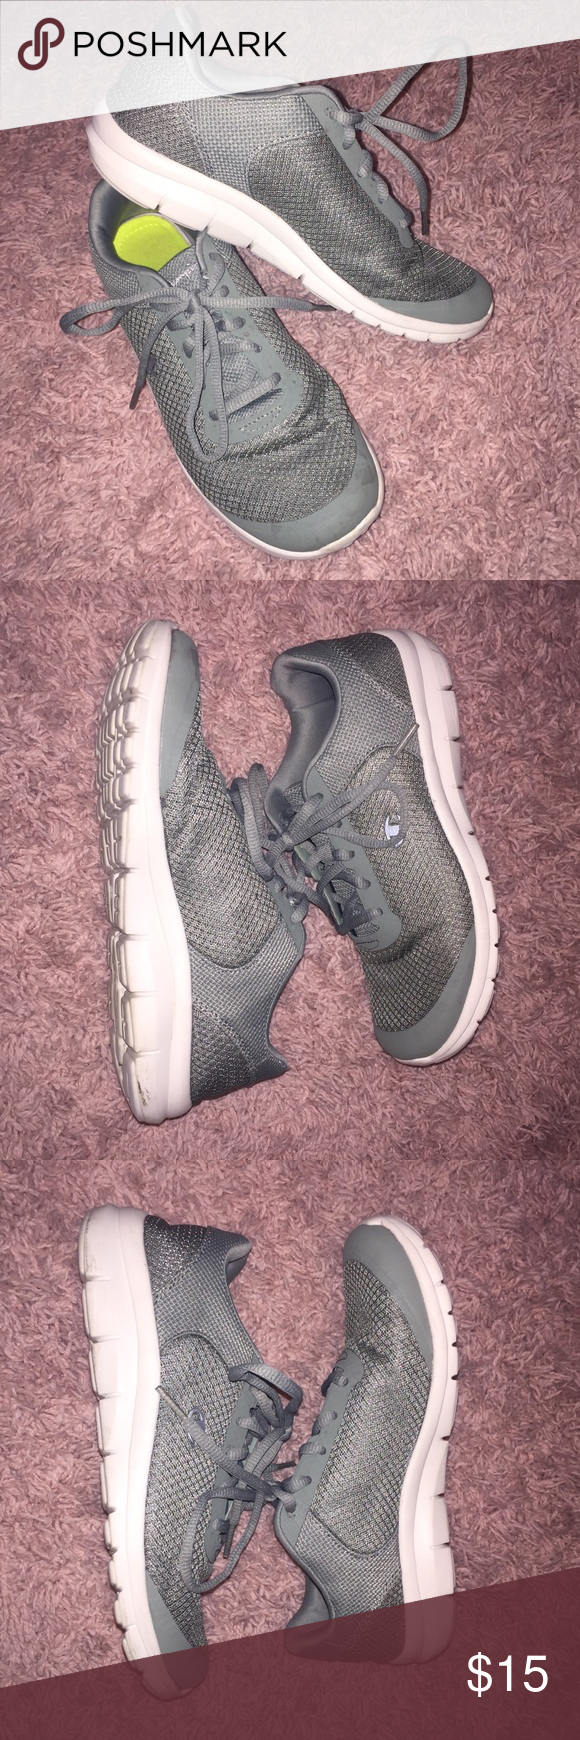 Green sneakers, Olive green color